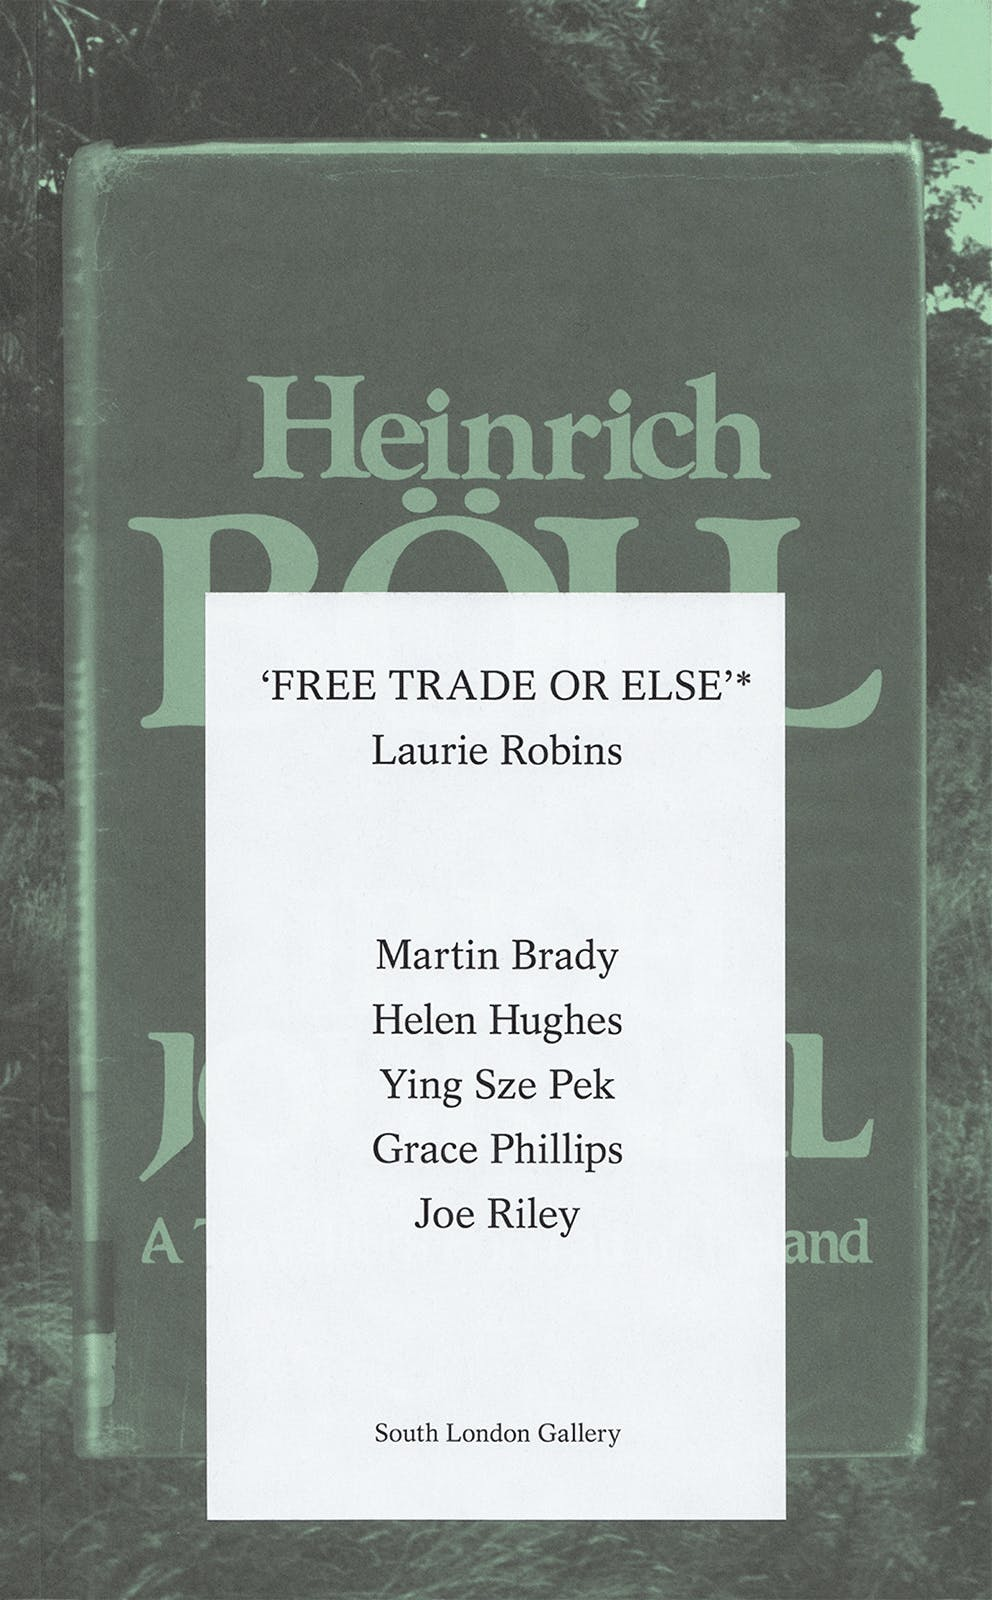 wolfe hall, laurie robins, free trade, free trade or else, south london gallery, art book, graphic design